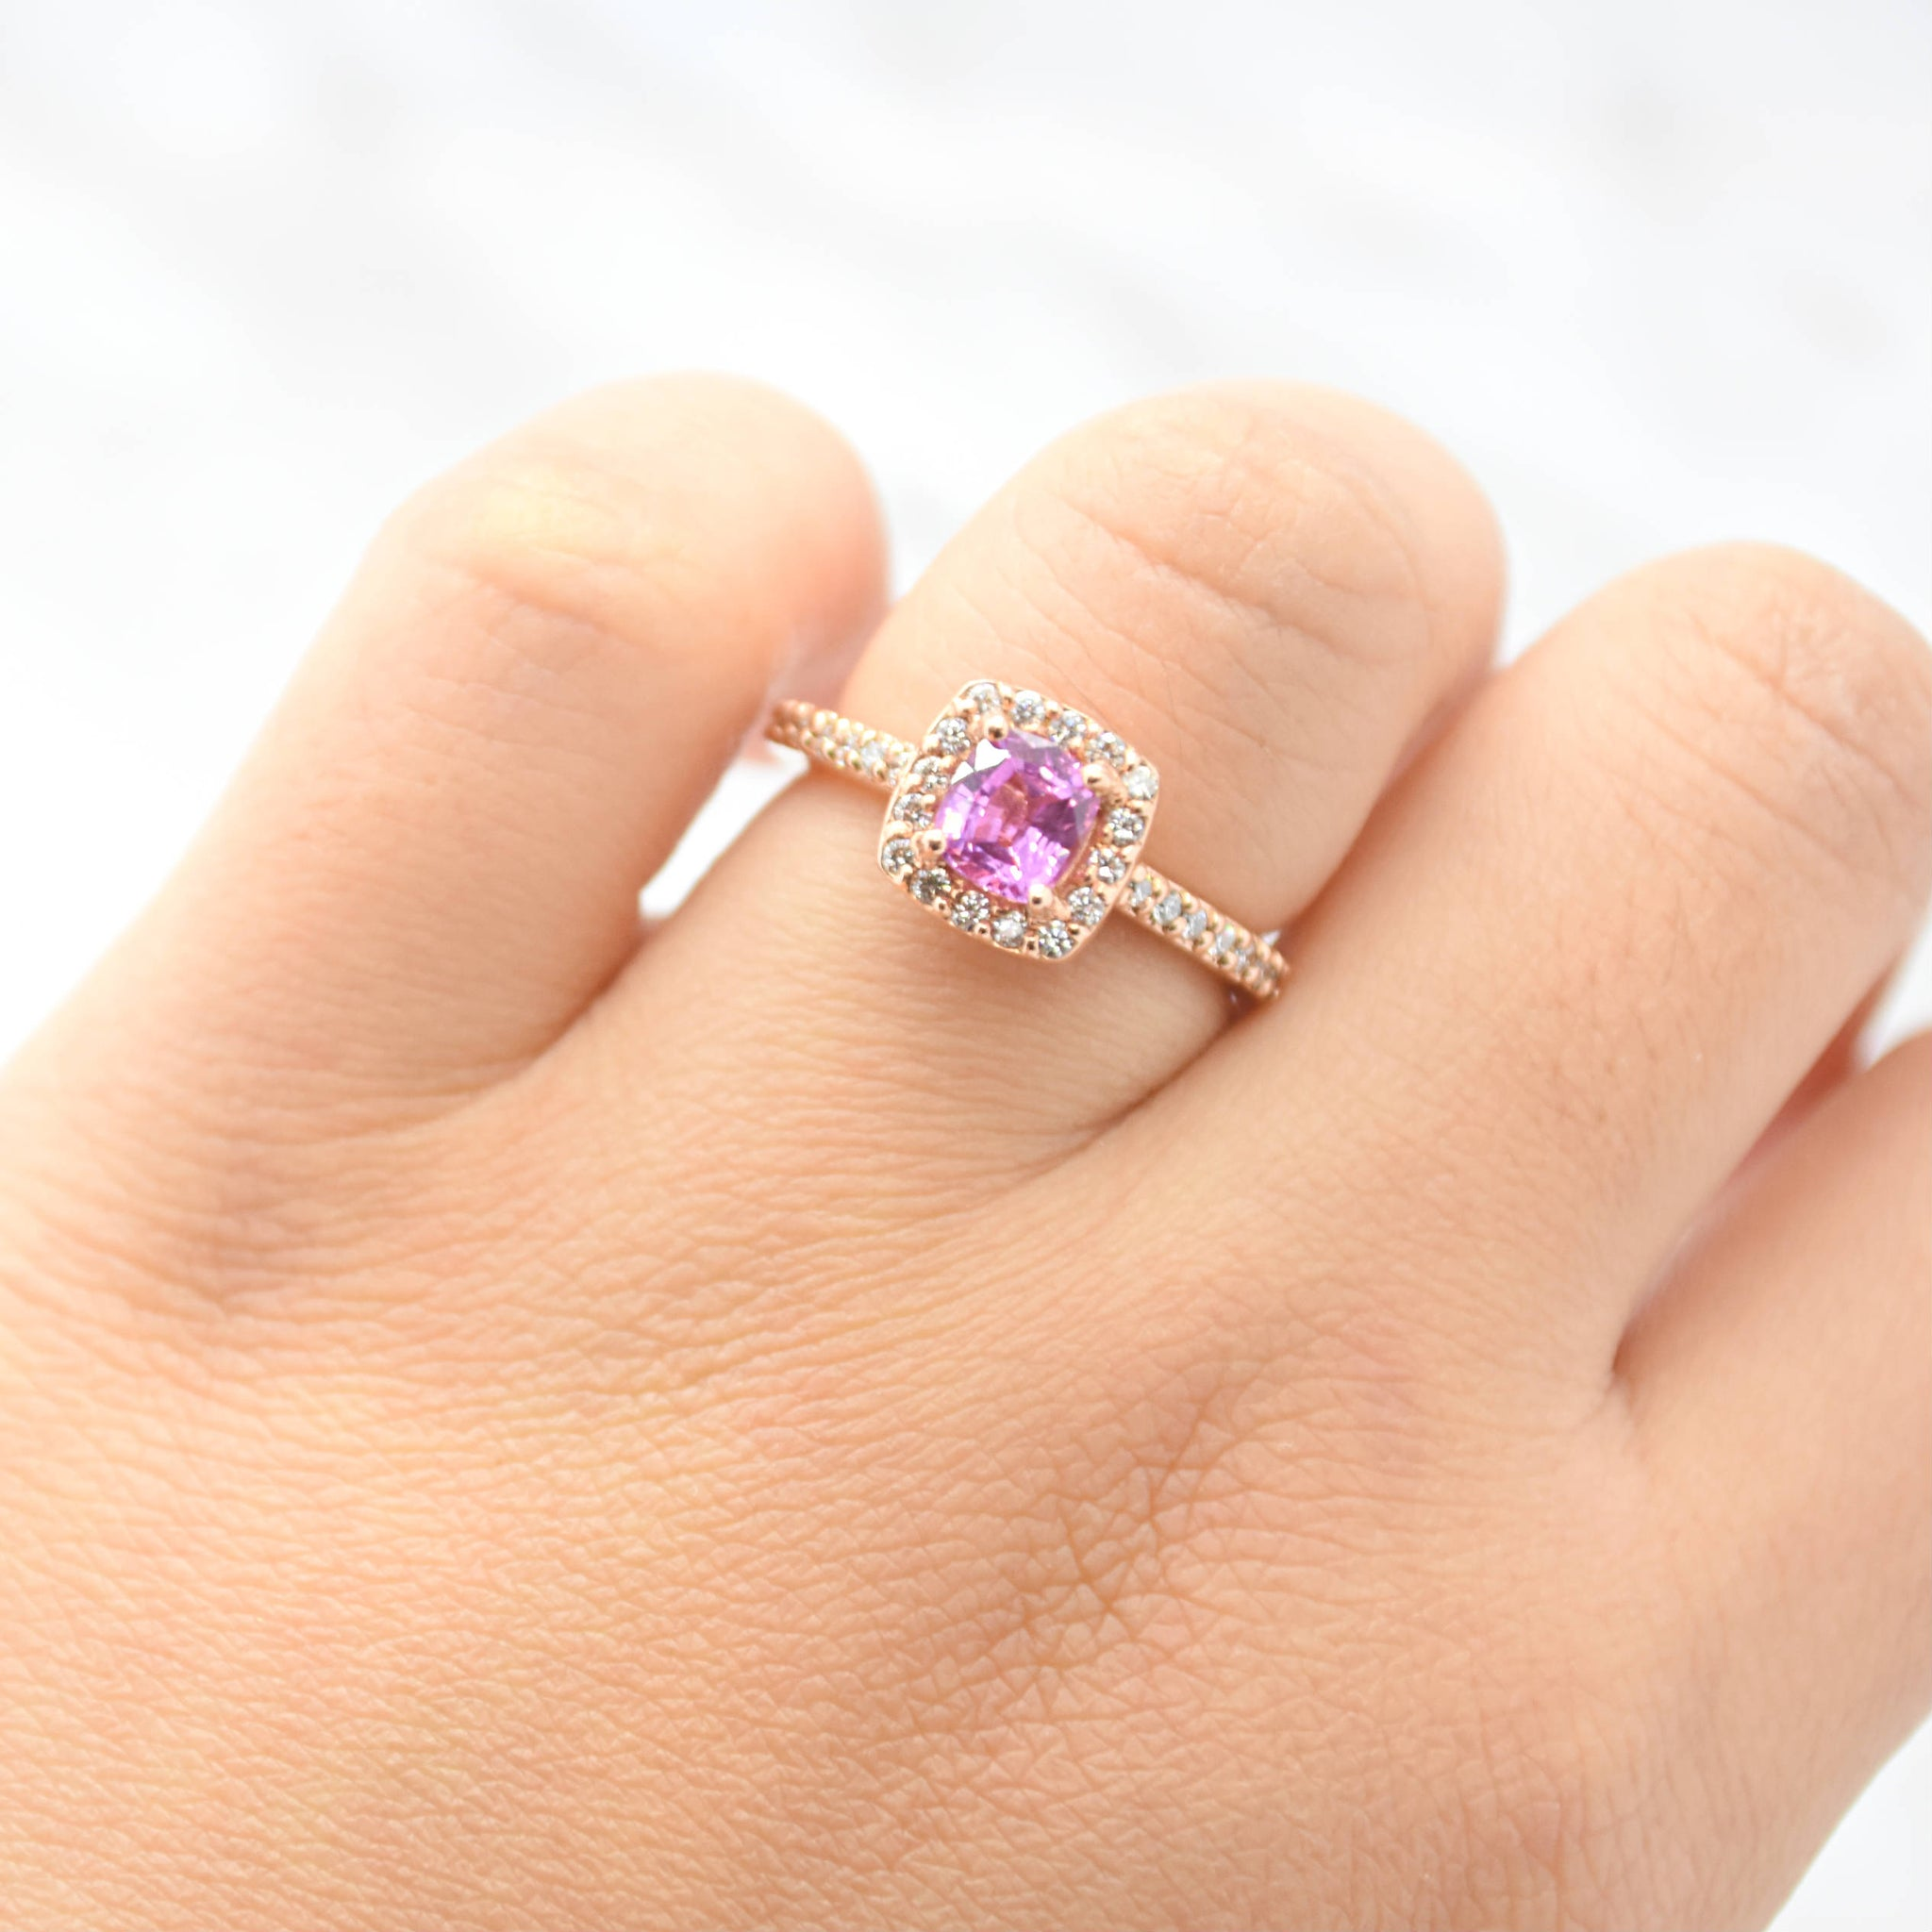 engagement ring diamond halo pink studded morganite with and prongs side youtube rings watch stone light